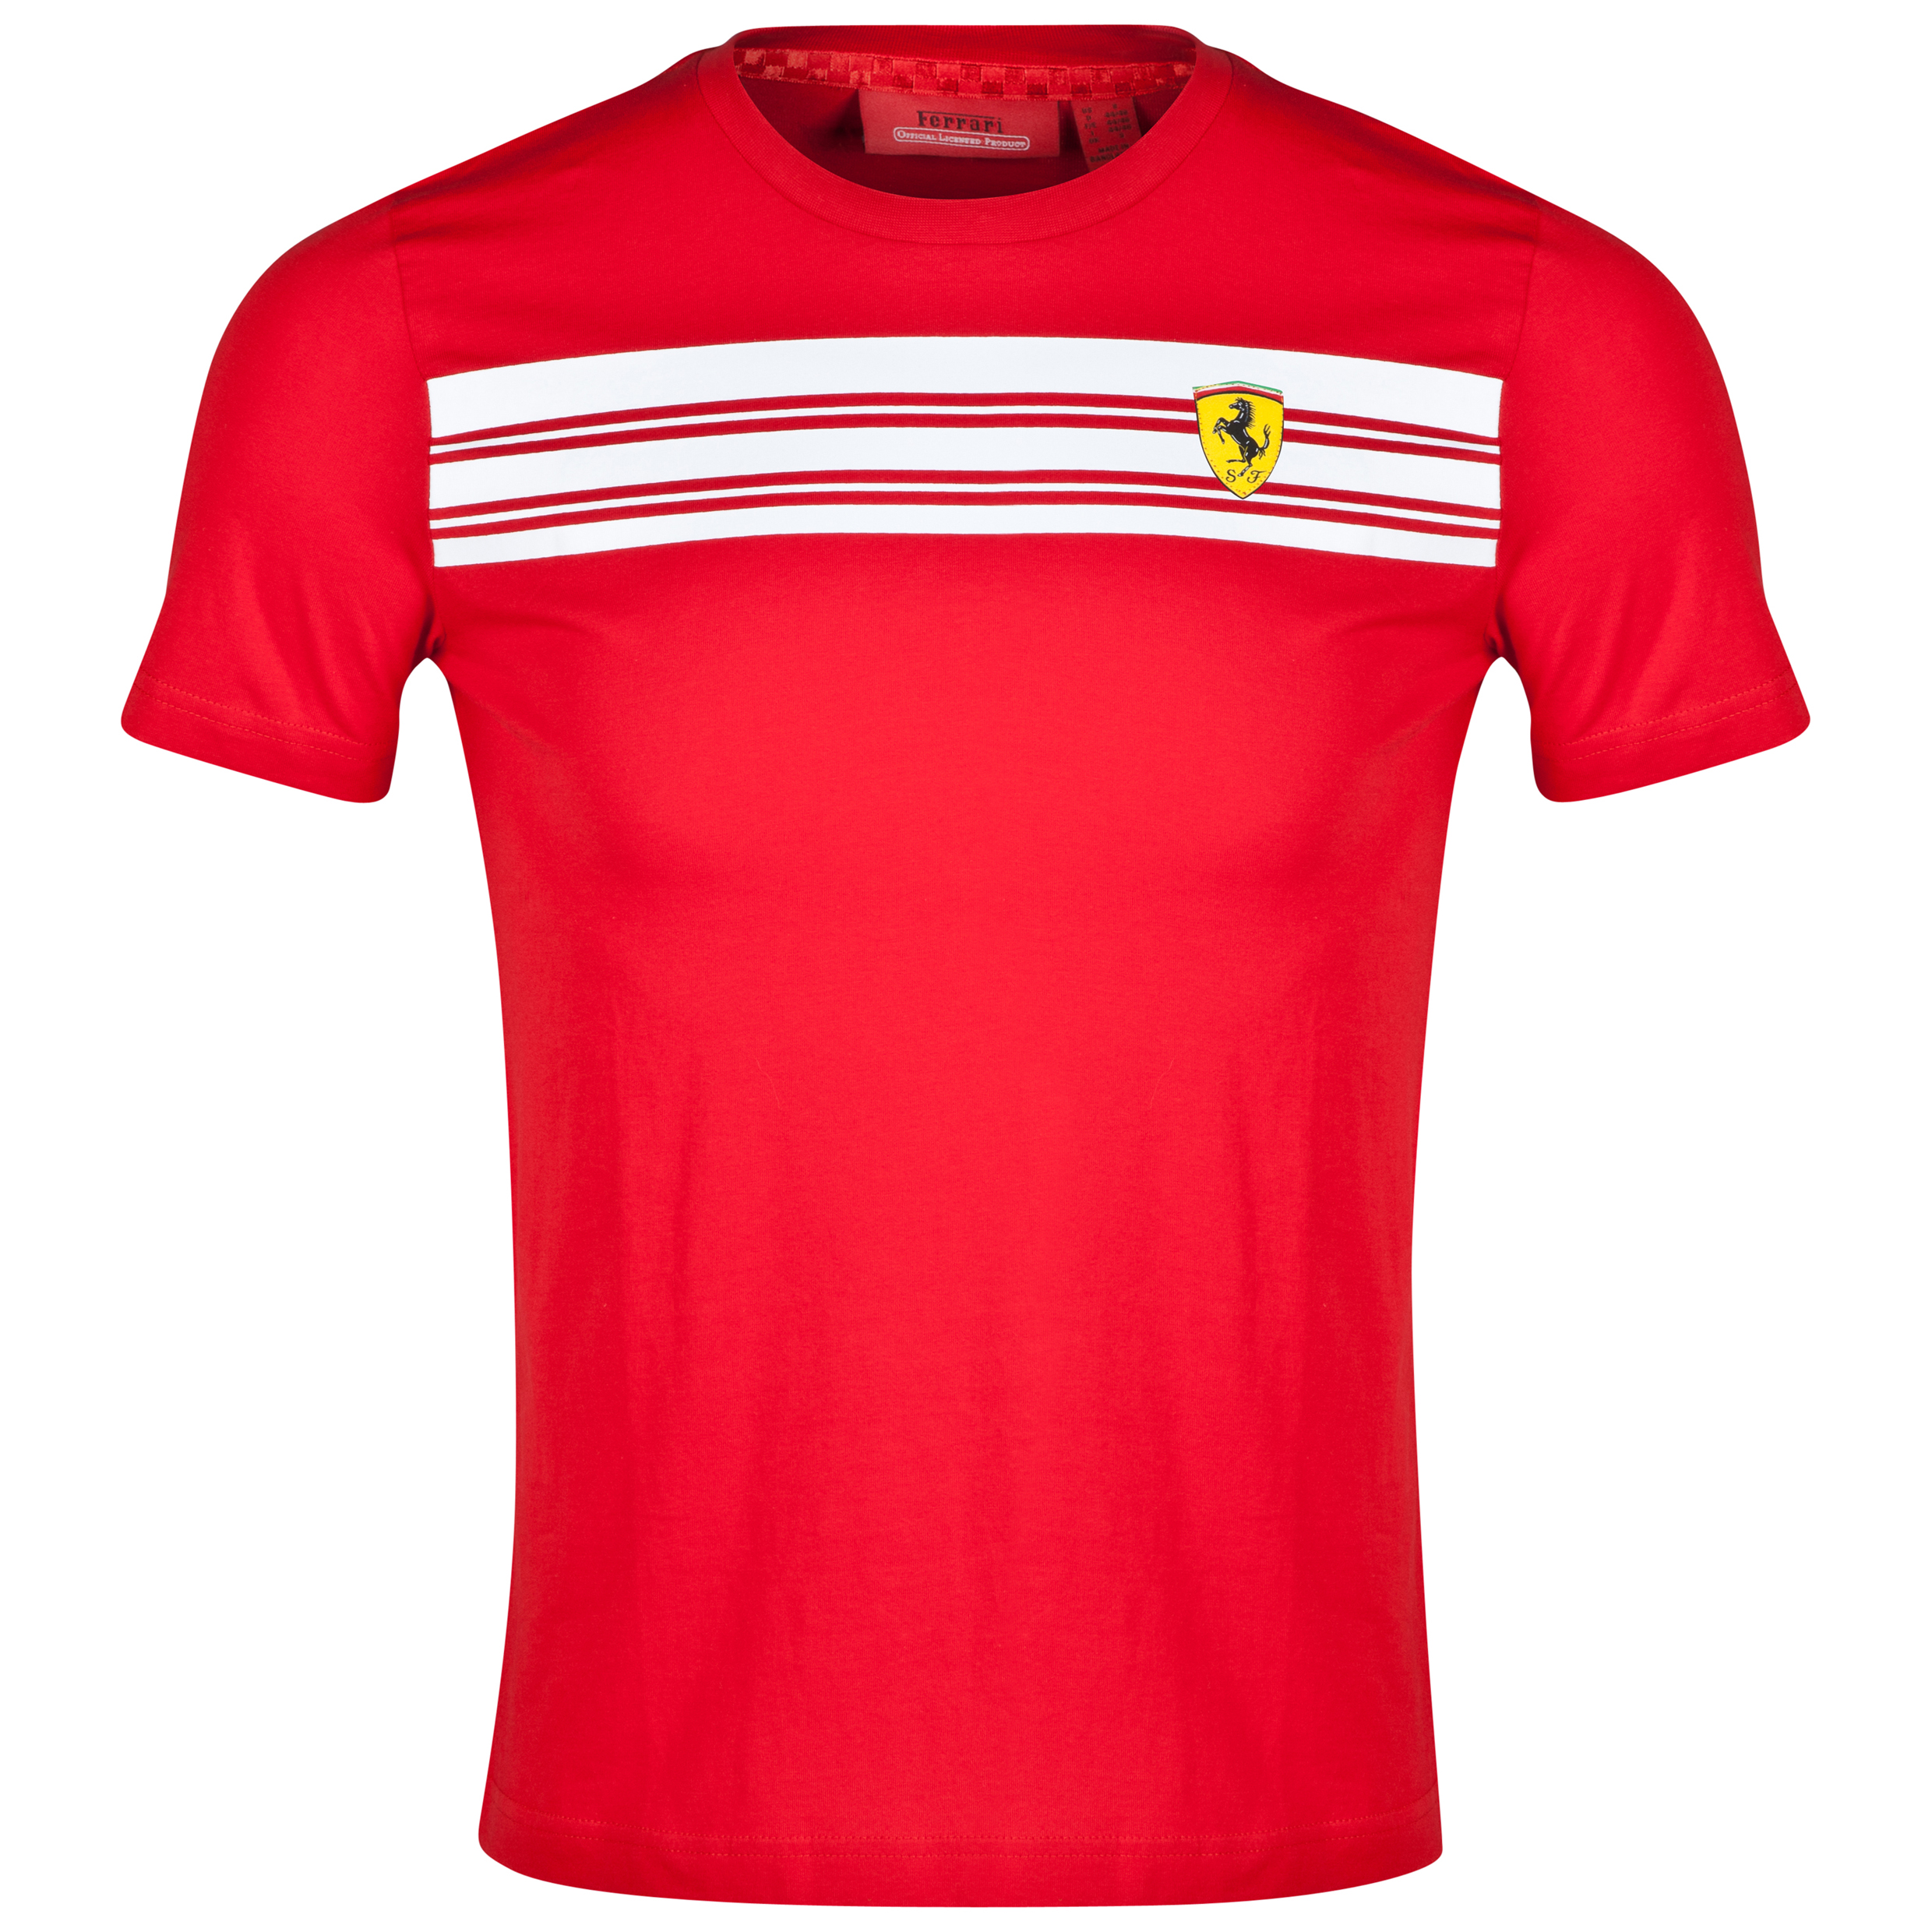 Scuderia Ferrari Striped T-Shirt - Red